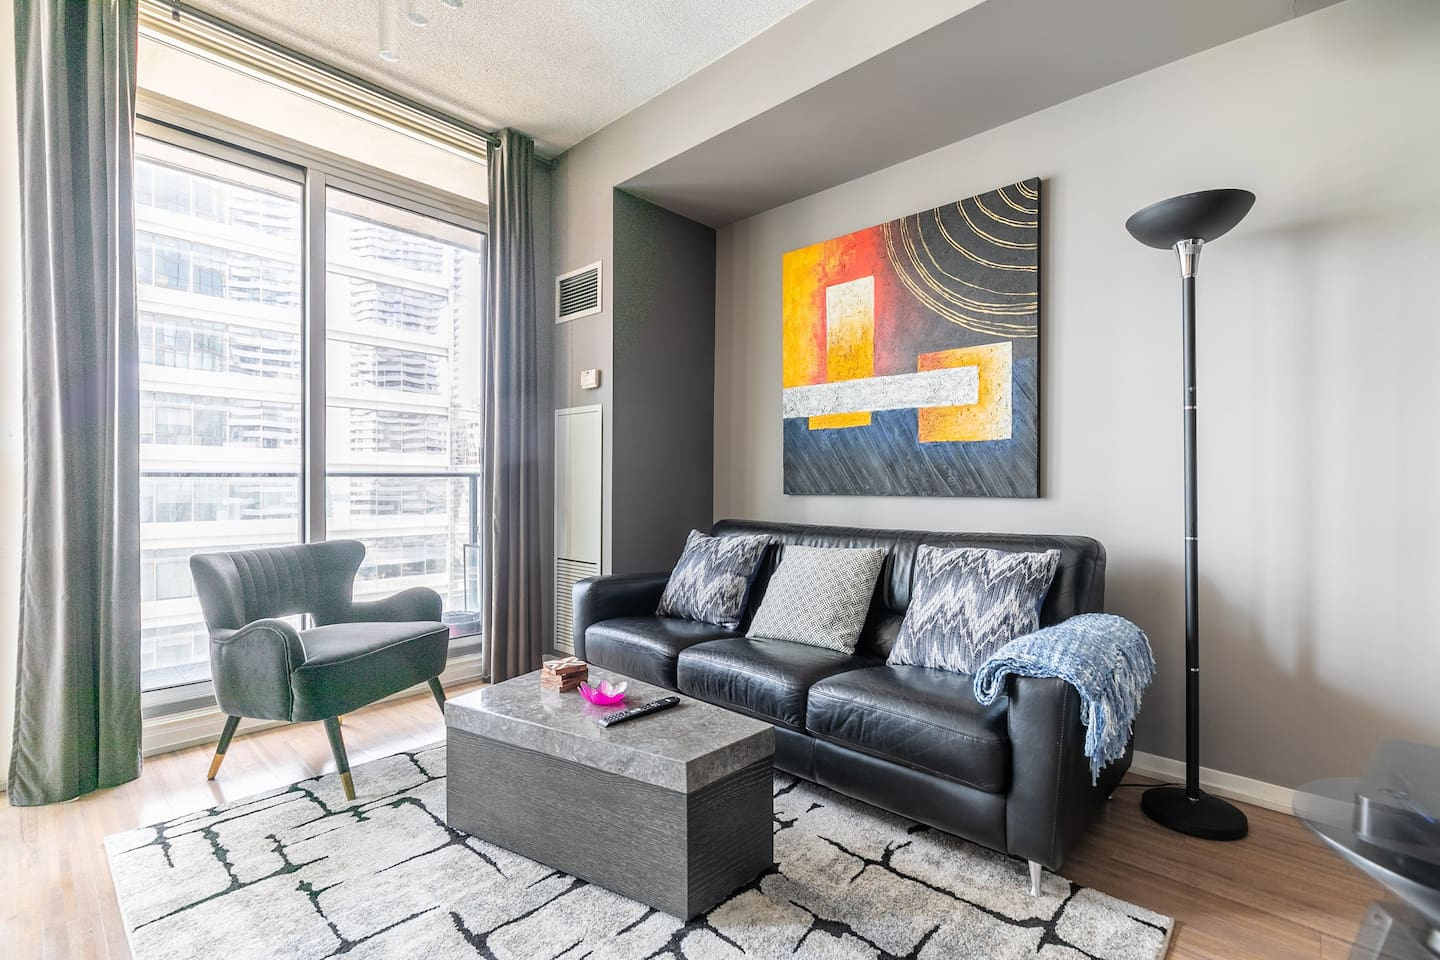 Beautifully designed unit with comfortable couch